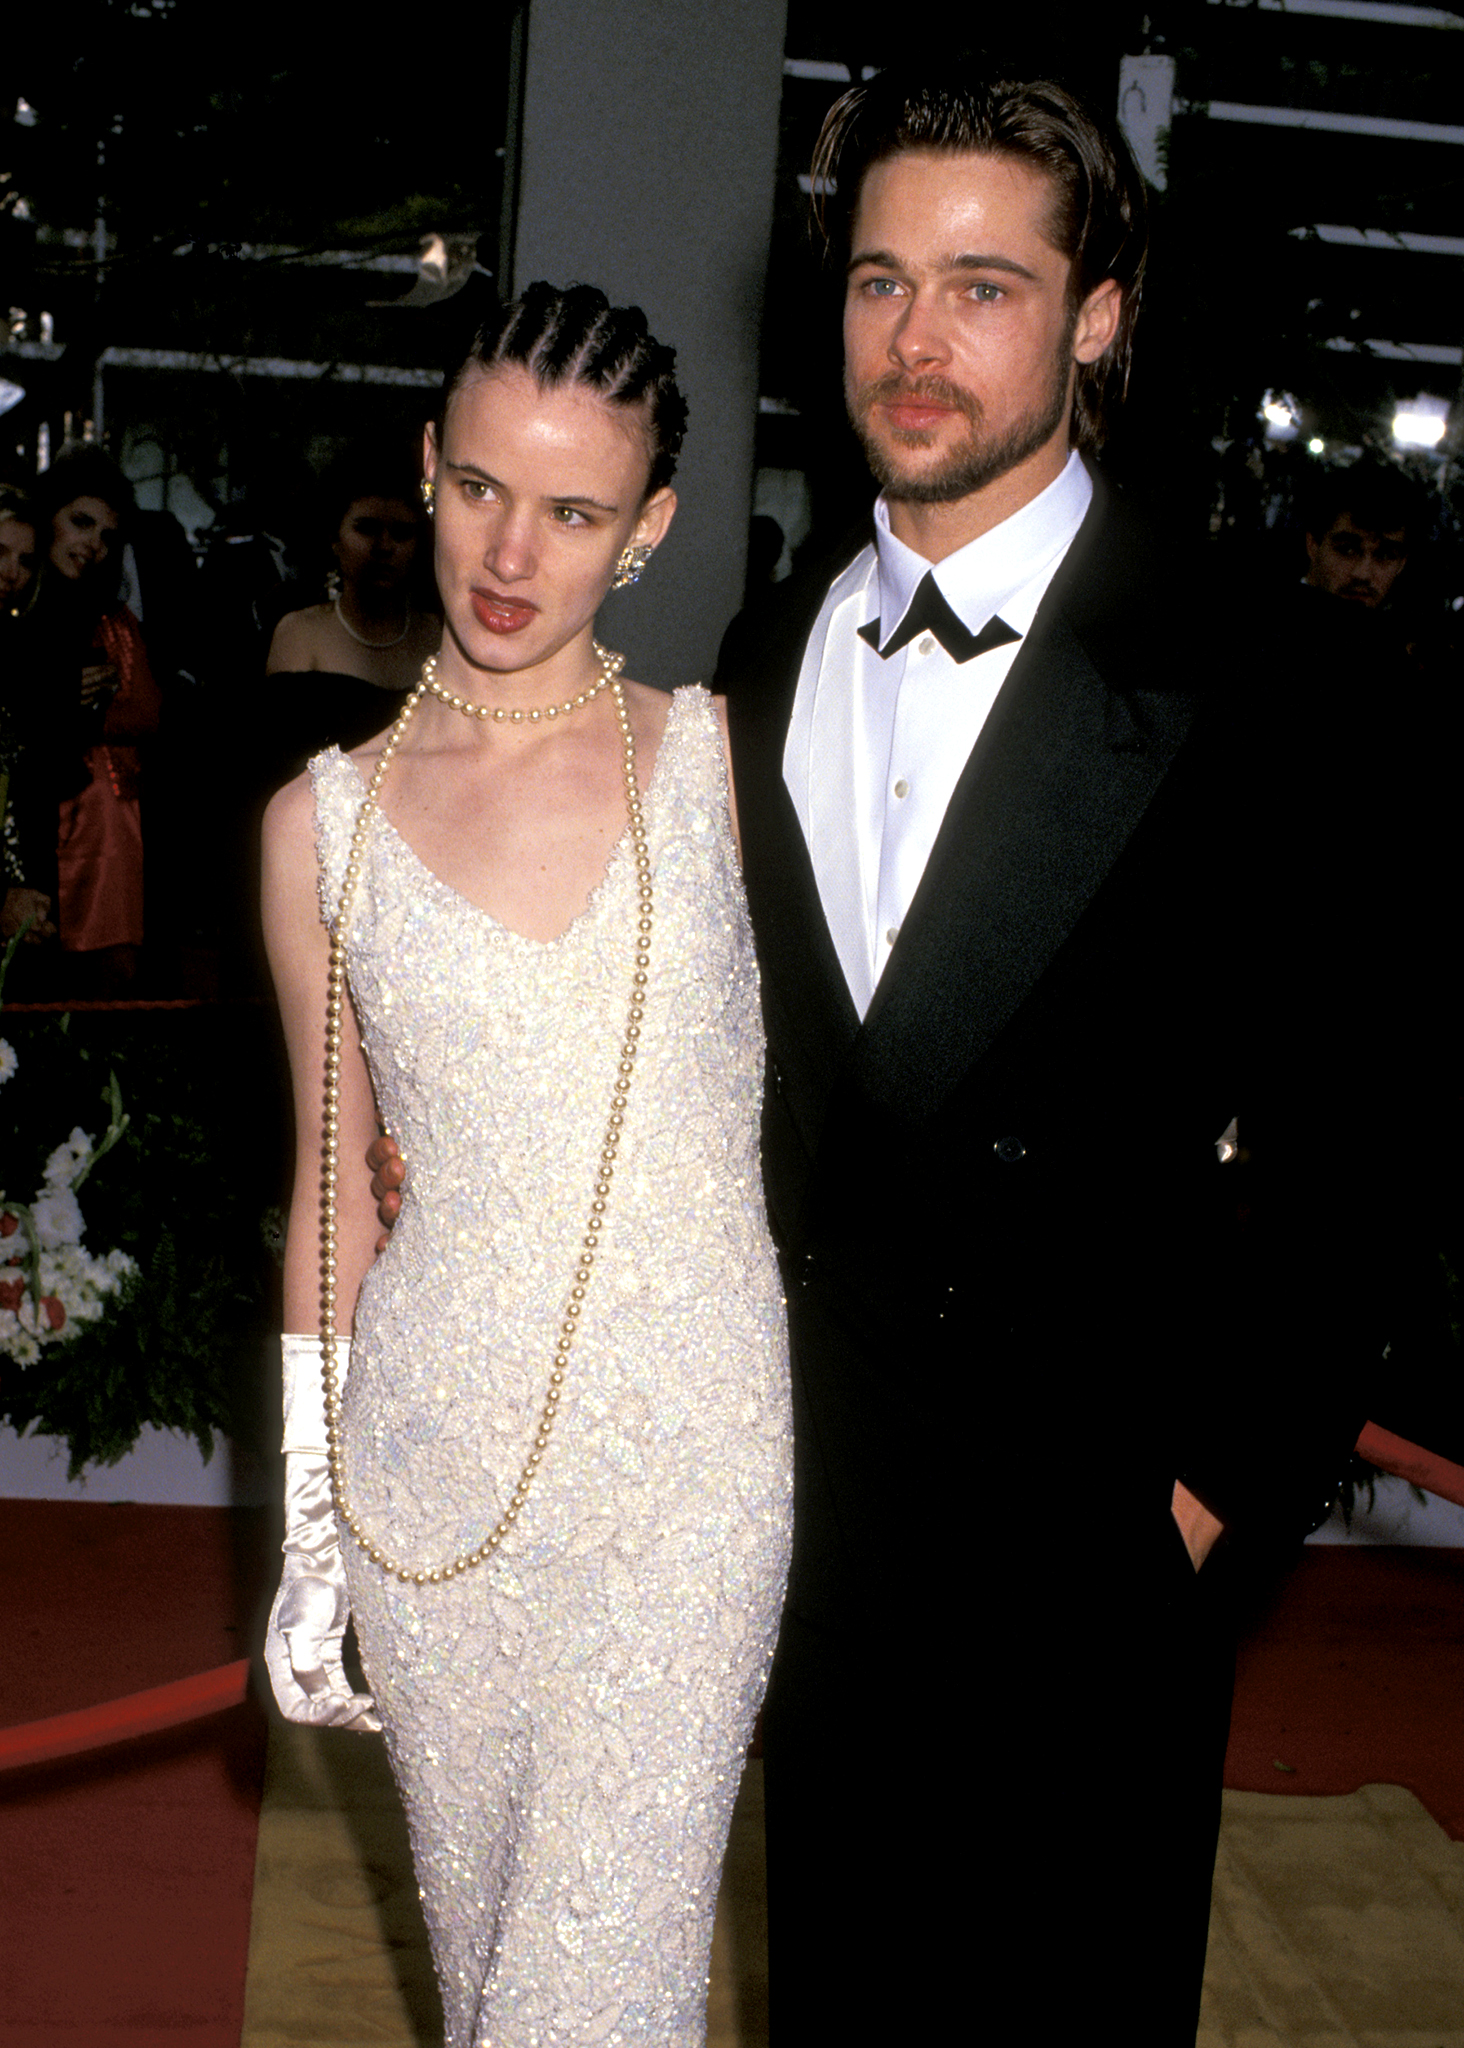 Lewis and Pitt at the 1992 Oscars (Photo: Jim Smeal/WireImage)